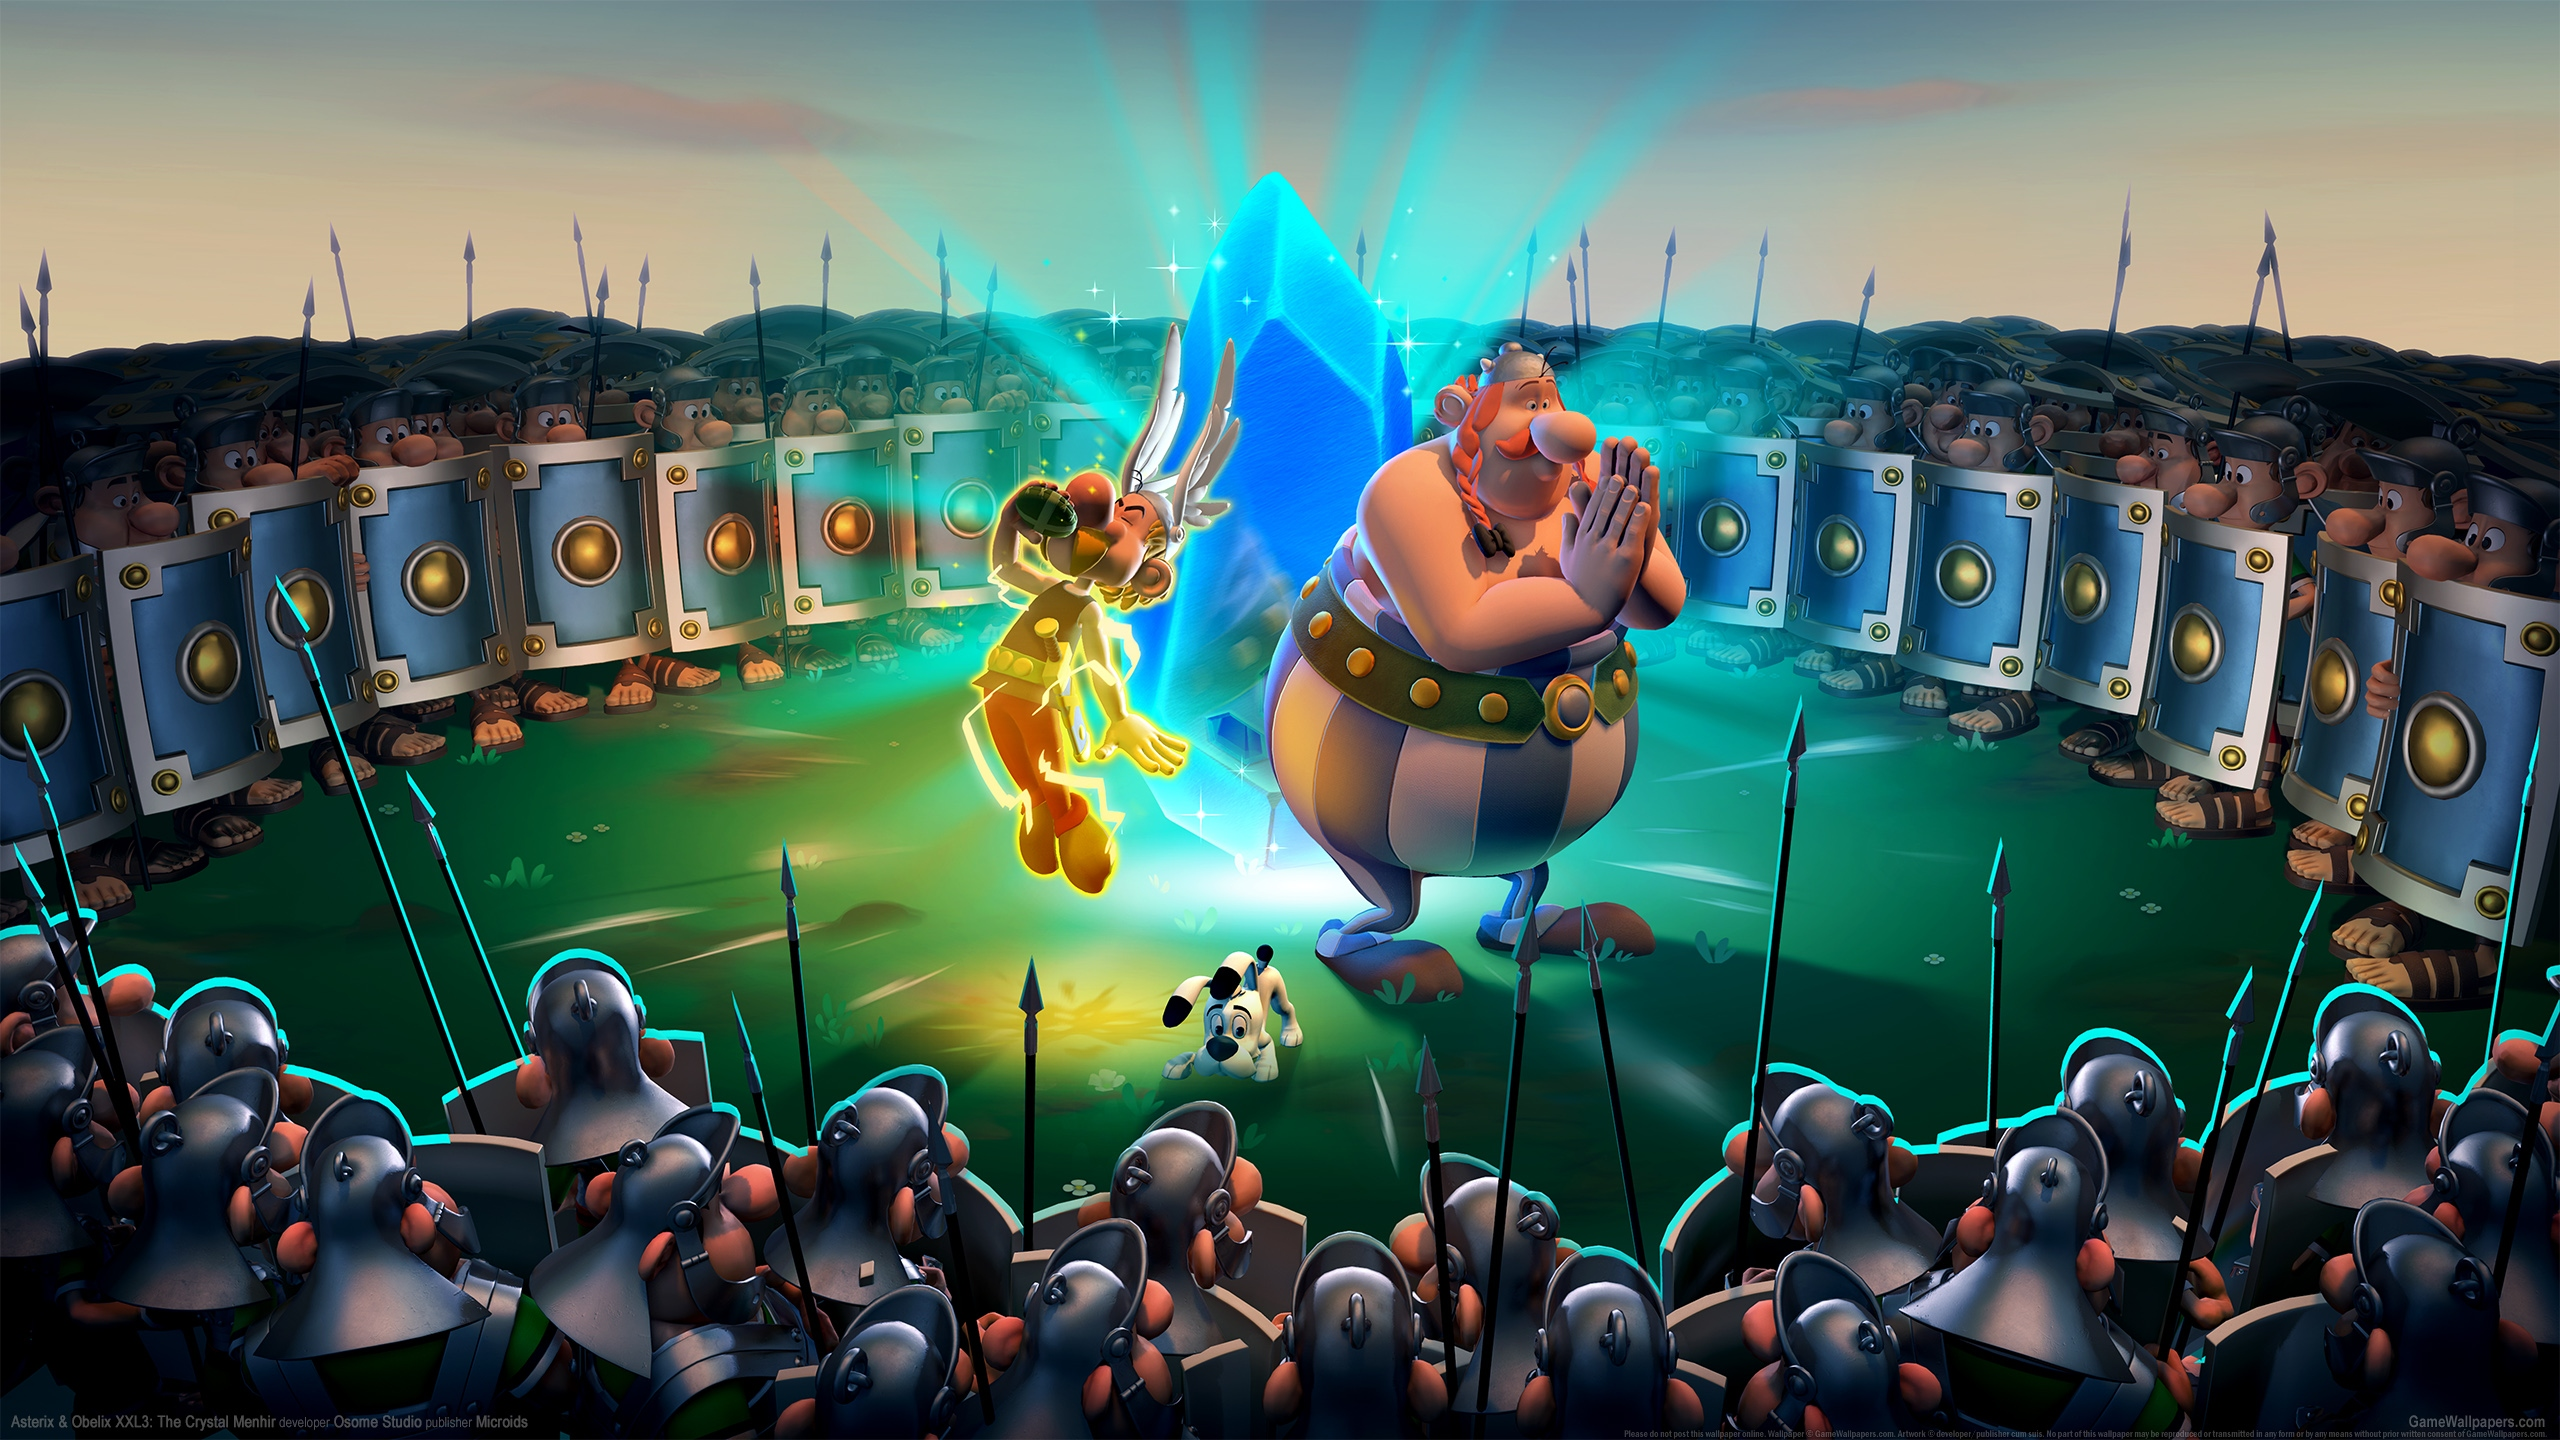 Asterix & Obelix XXL3: The Crystal Menhir 2560x1440 Hintergrundbild 01